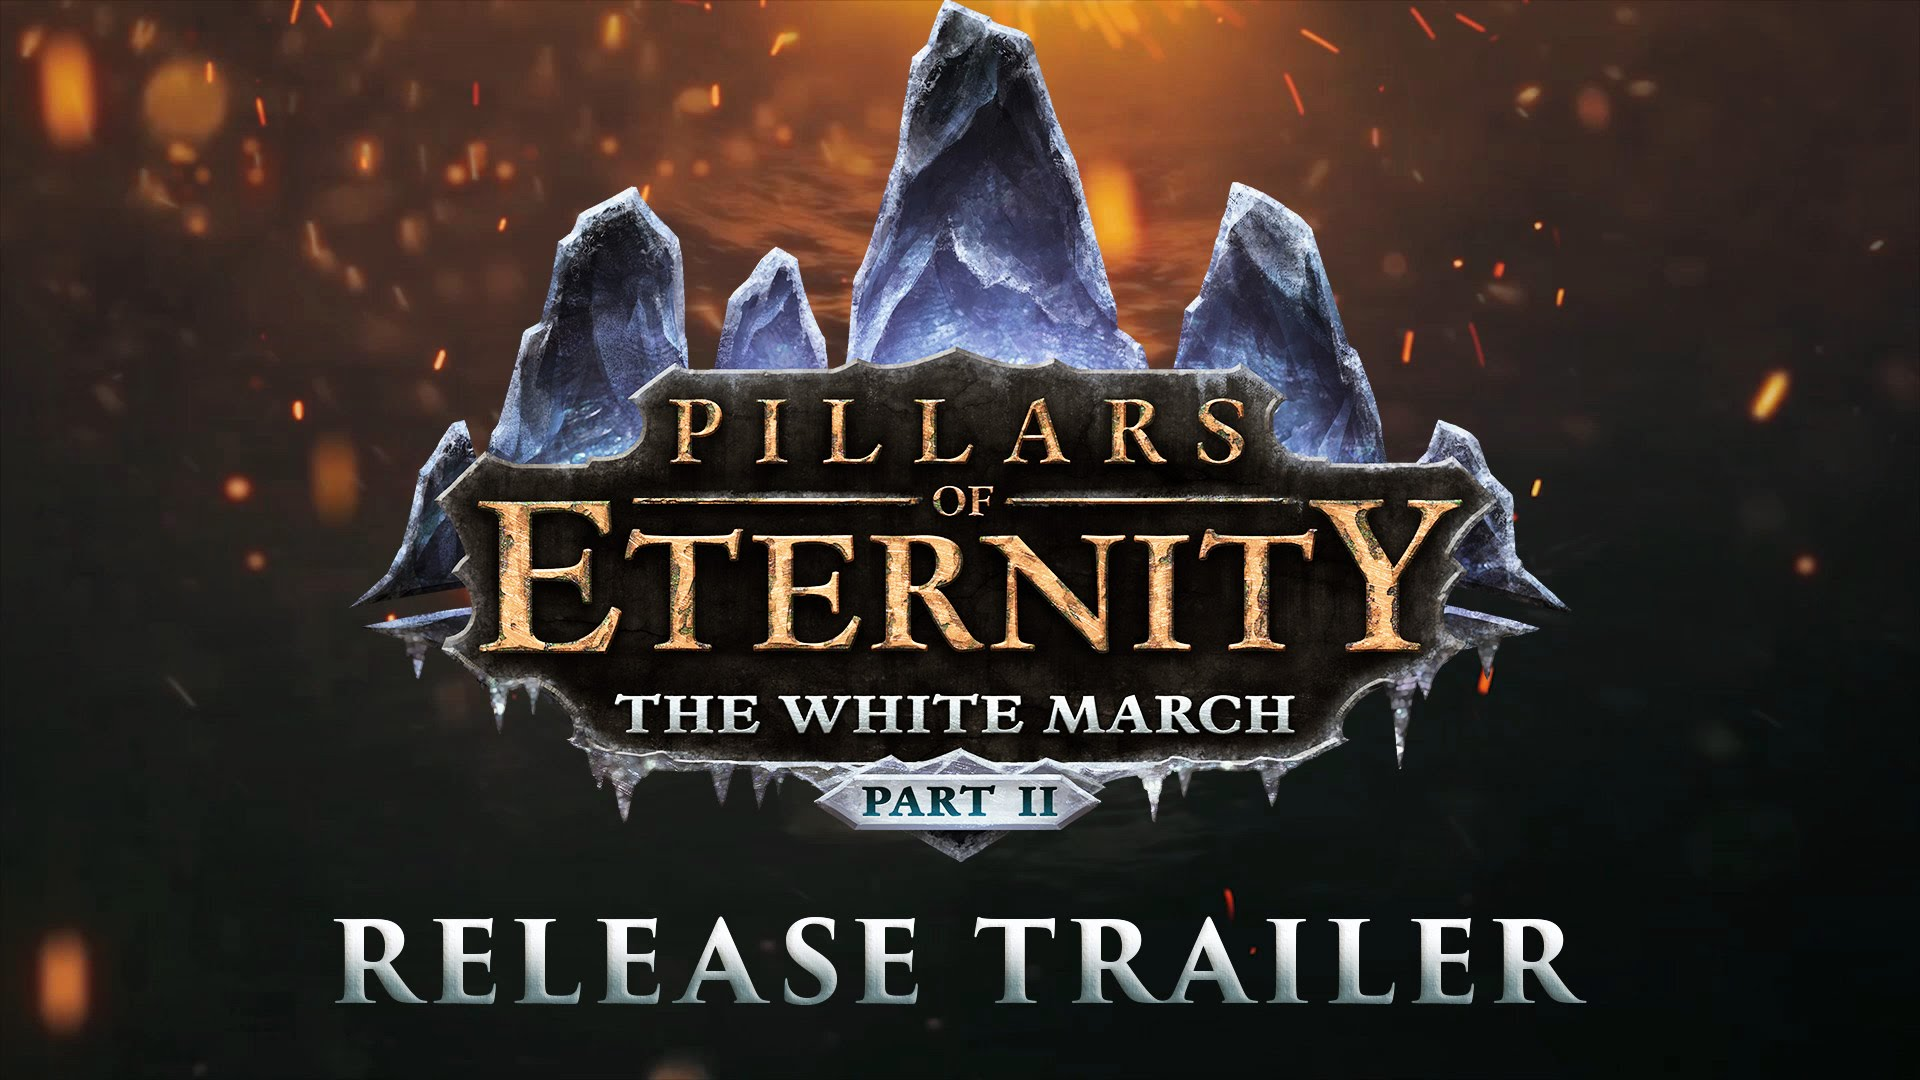 Pillars of Eternity - The White March Part 2 - Release Trailer